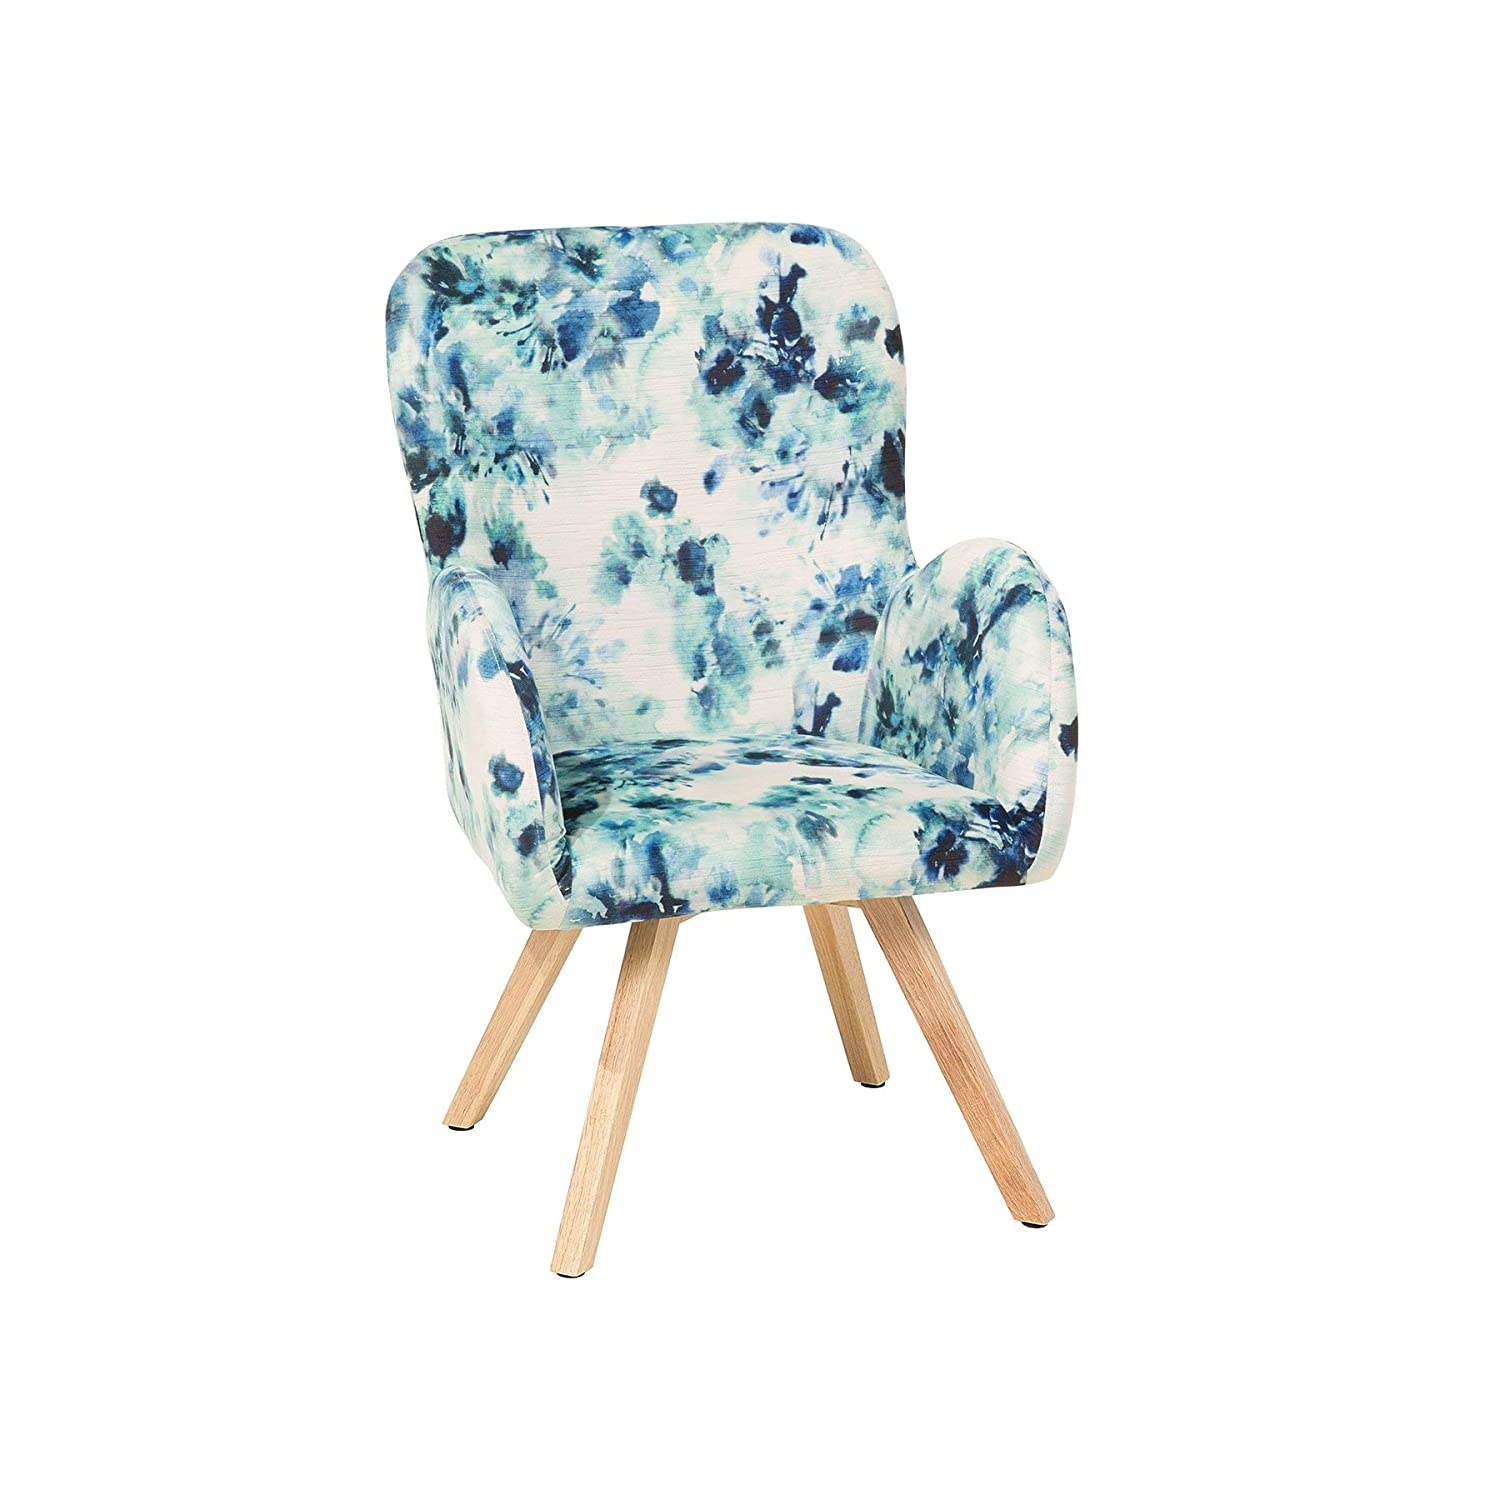 Retro modern fabric chair low back wooden legs living room floral pattern bjarn beliani amazon co uk kitchen home